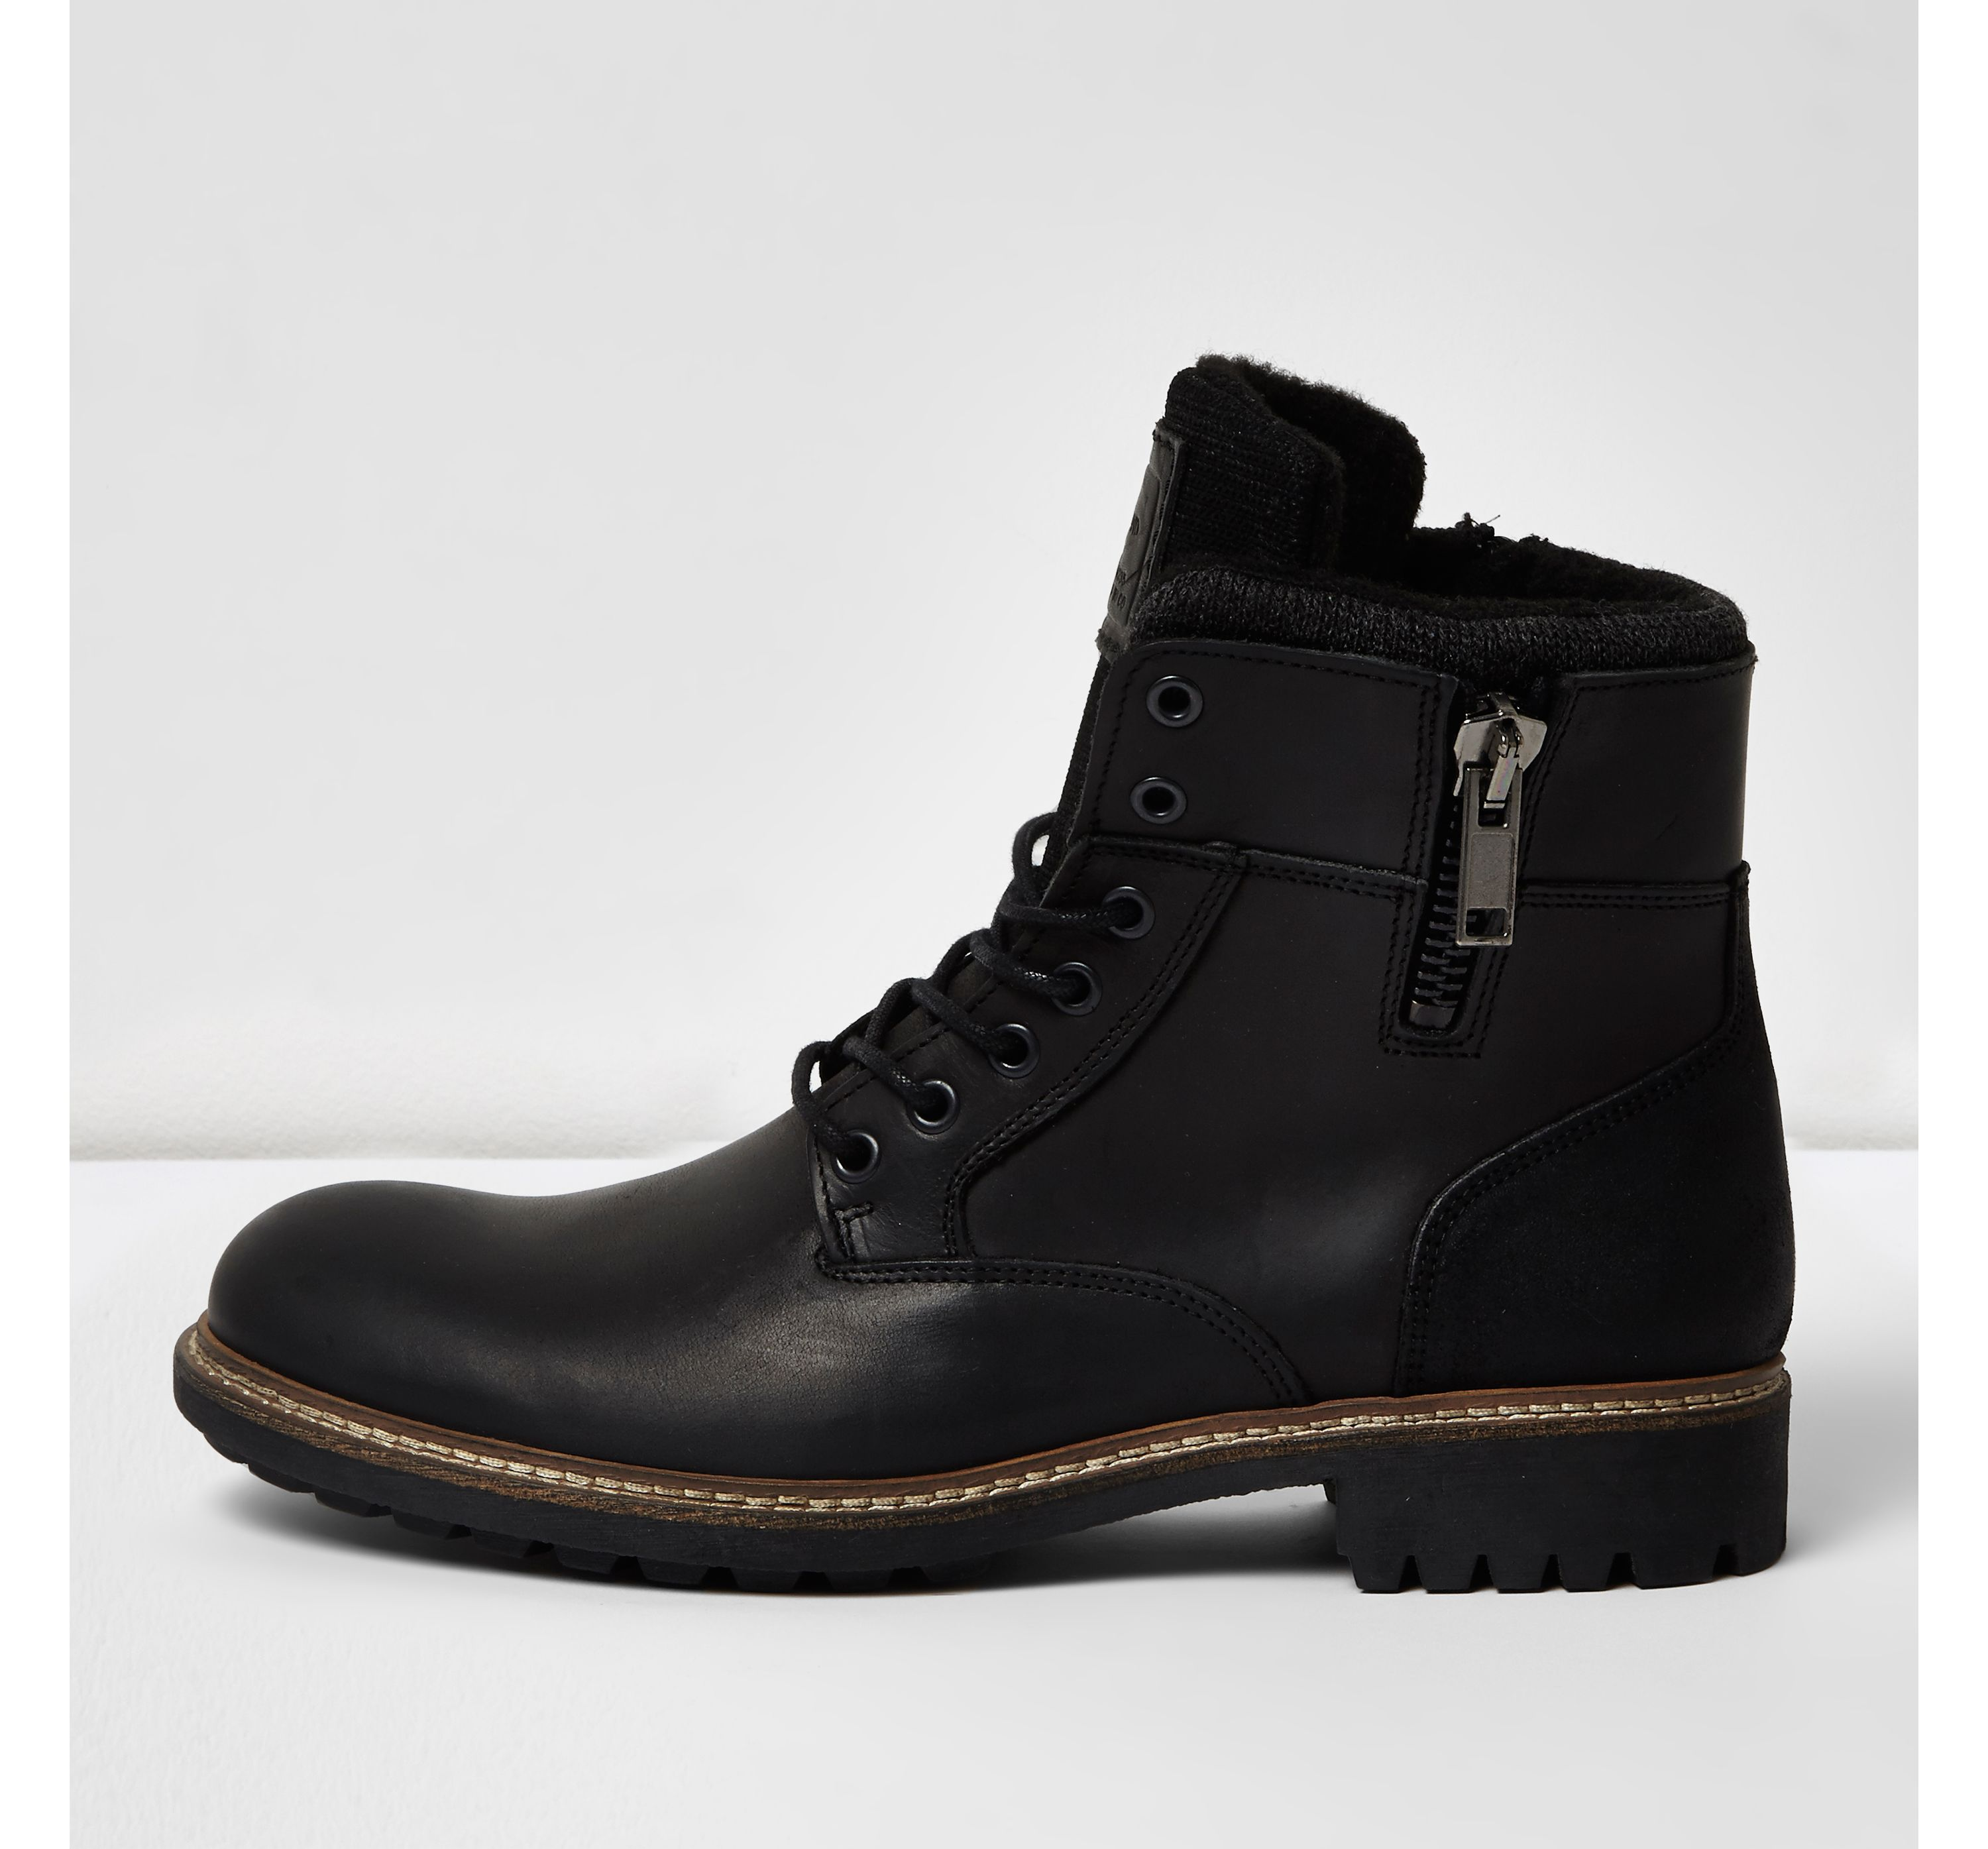 mens black leather military boots